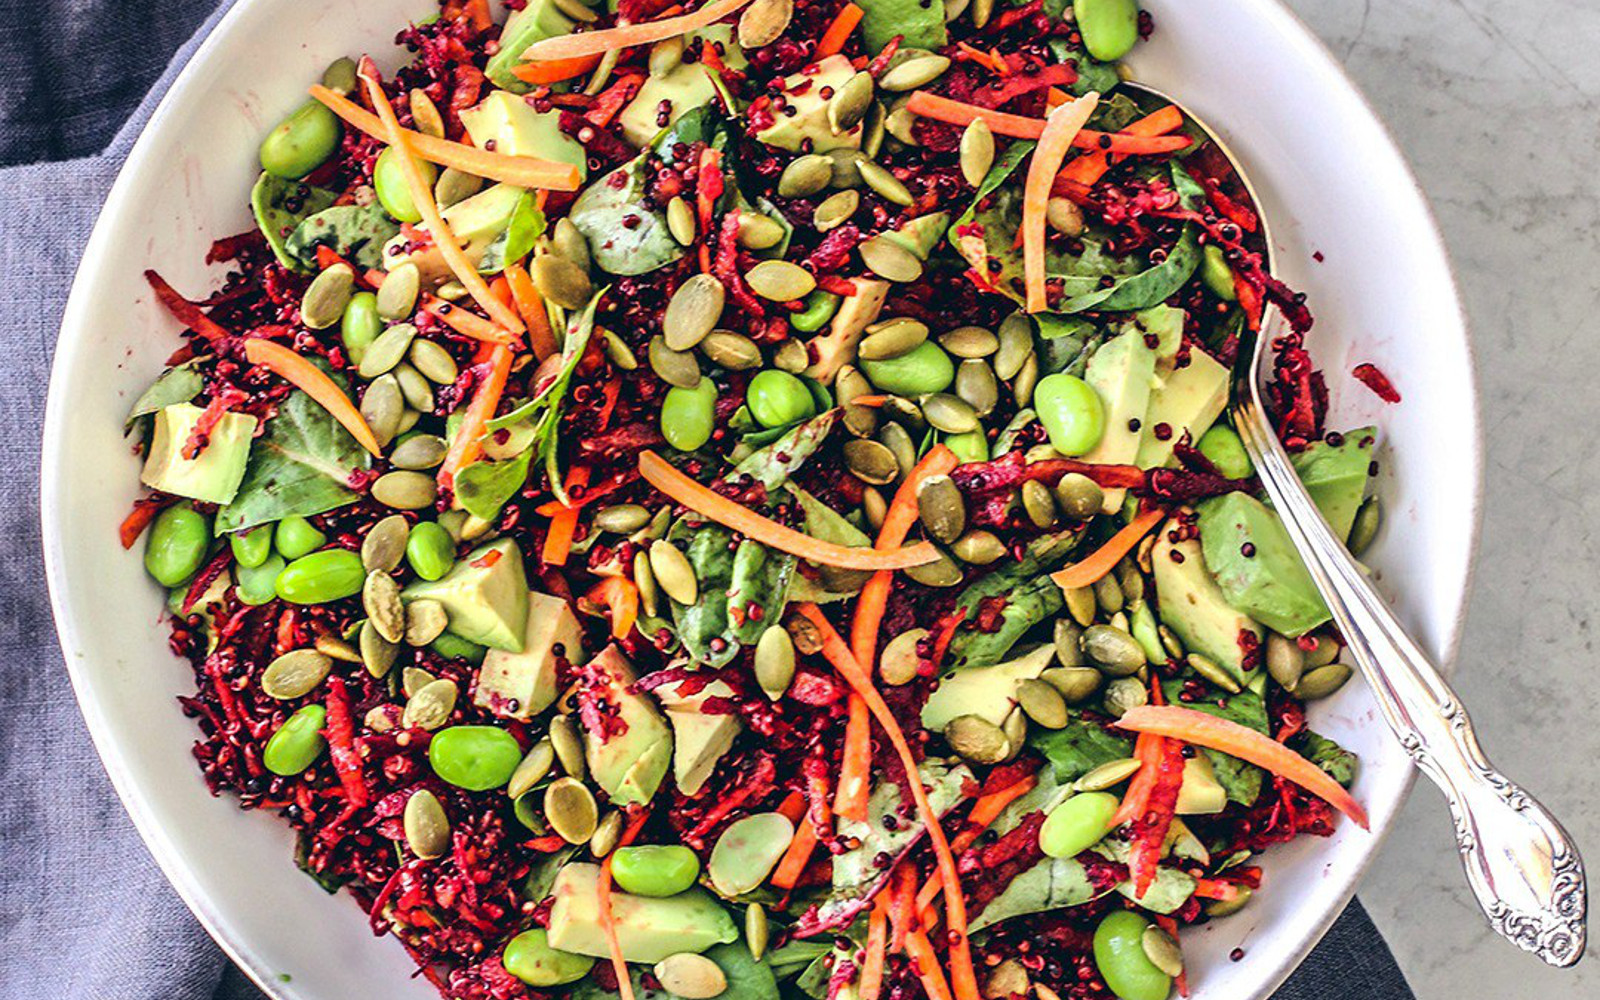 Vegan Bright Beet Salad With Quinoa In a Citrus Vinaigrette